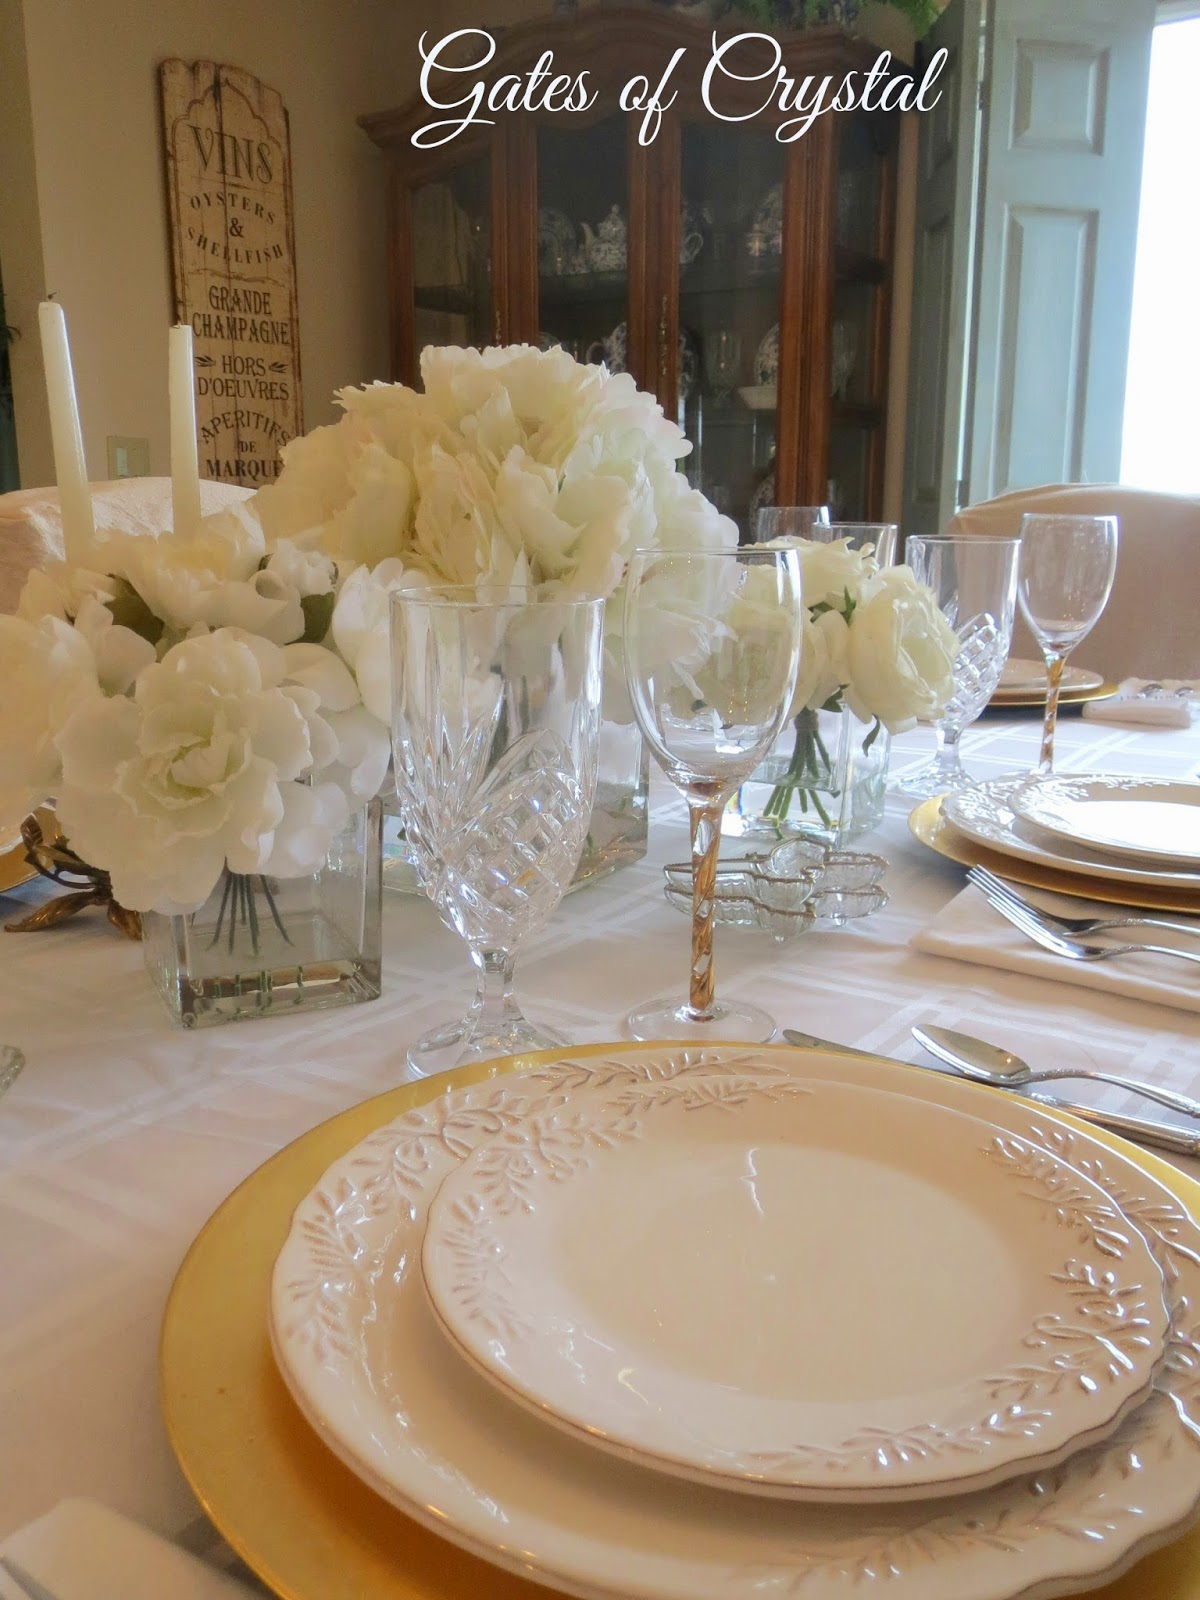 Gates of Crystal White and Gold Table Setting